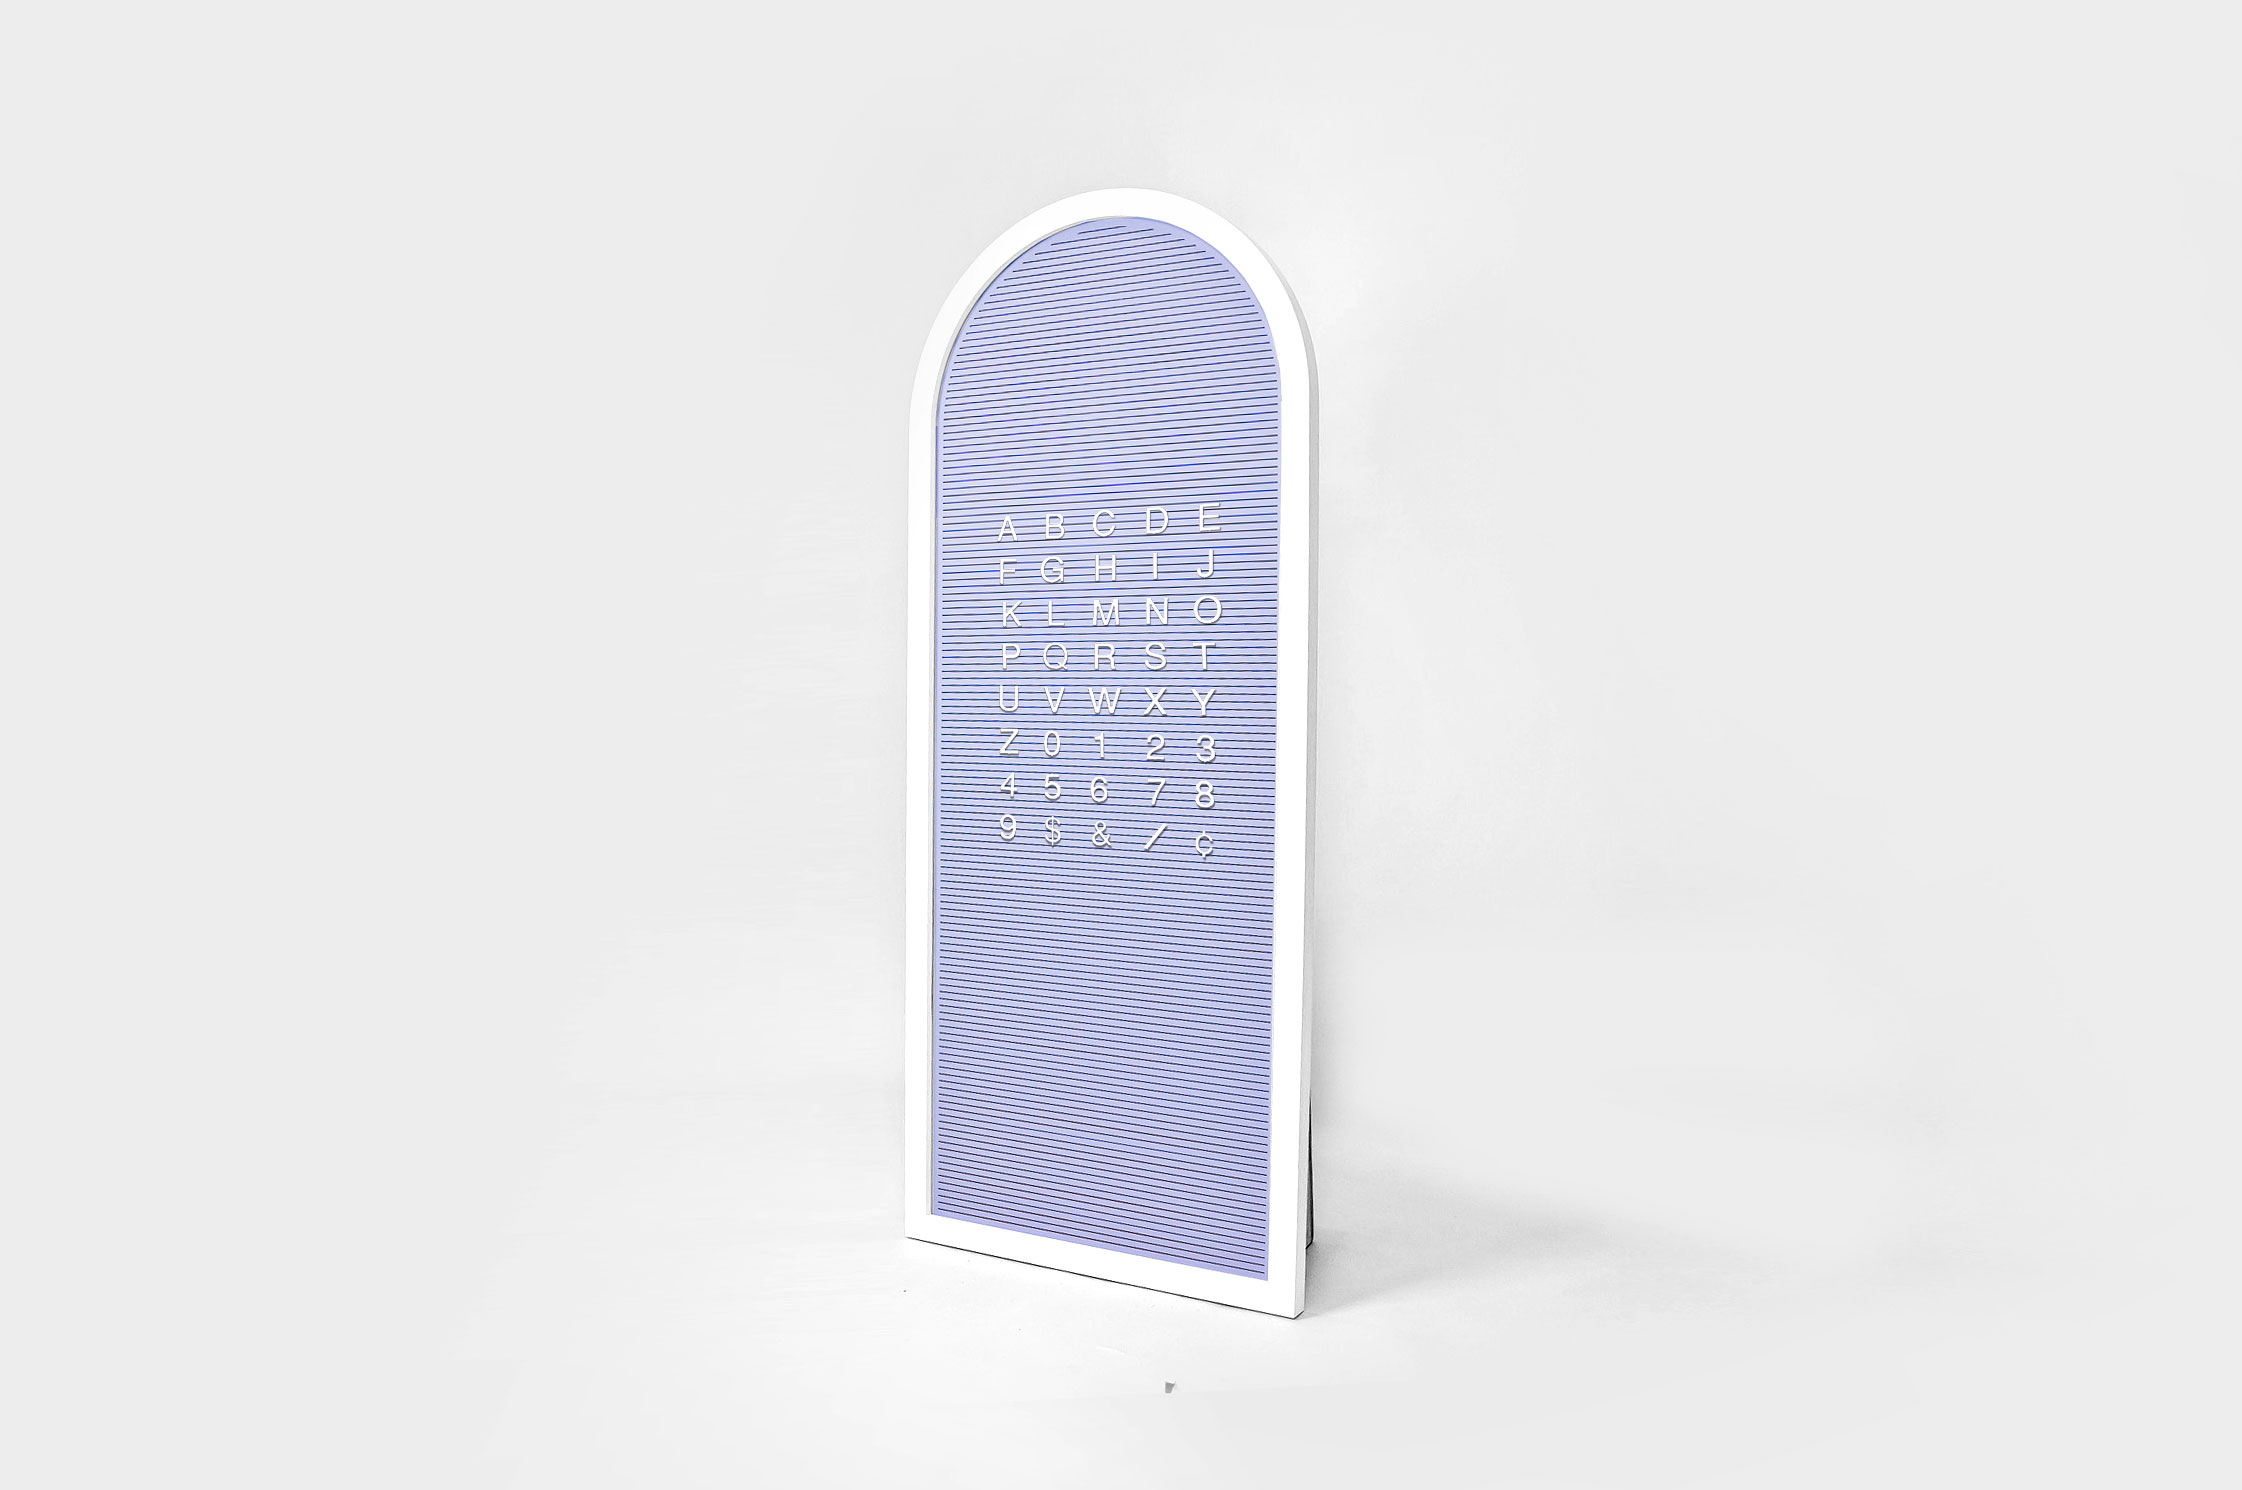 Custom purple changeable letterboard sign for Re:Store, a retail store and community space on Maiden Lane in San Francisco, CA.